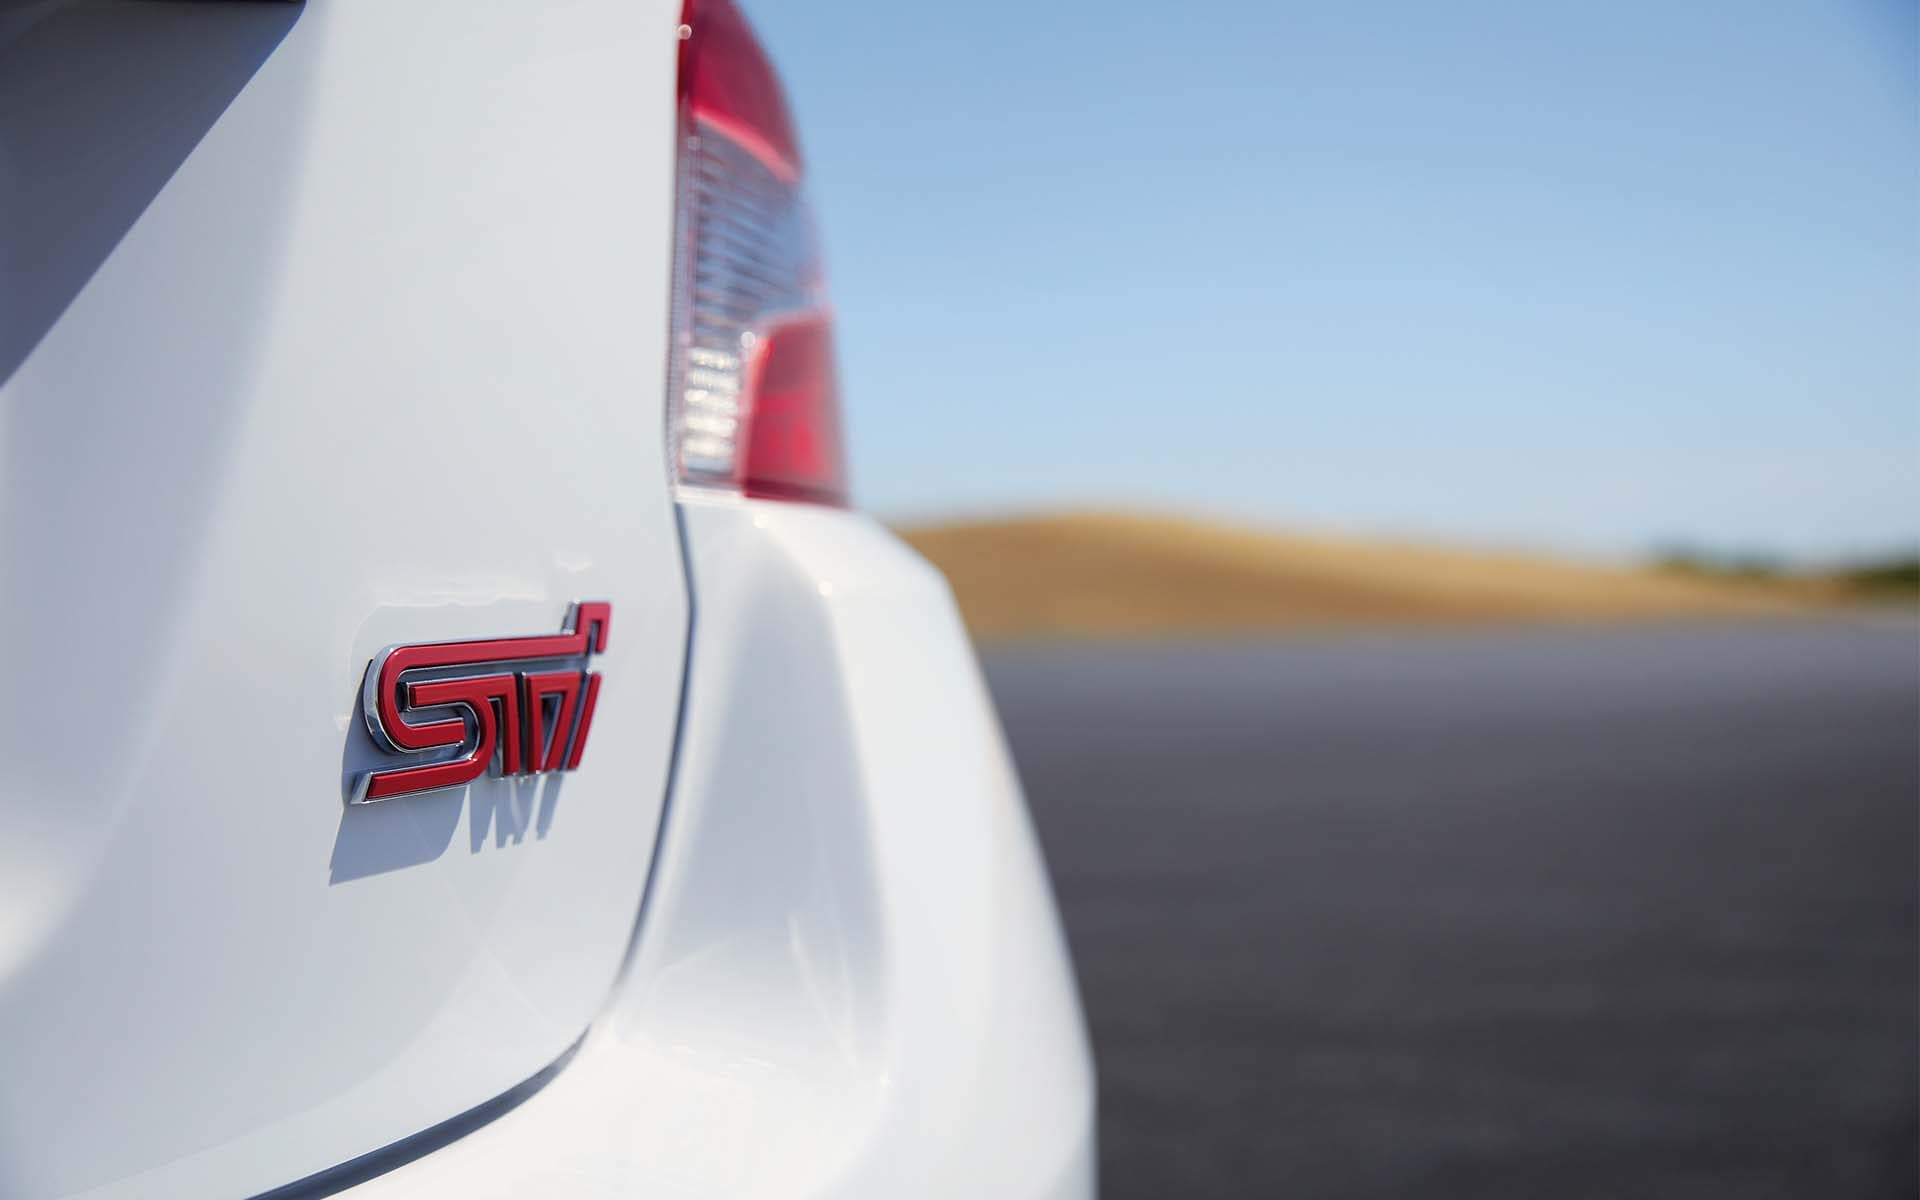 Close up view of Subaru WRX STI Series.White rear STI badge